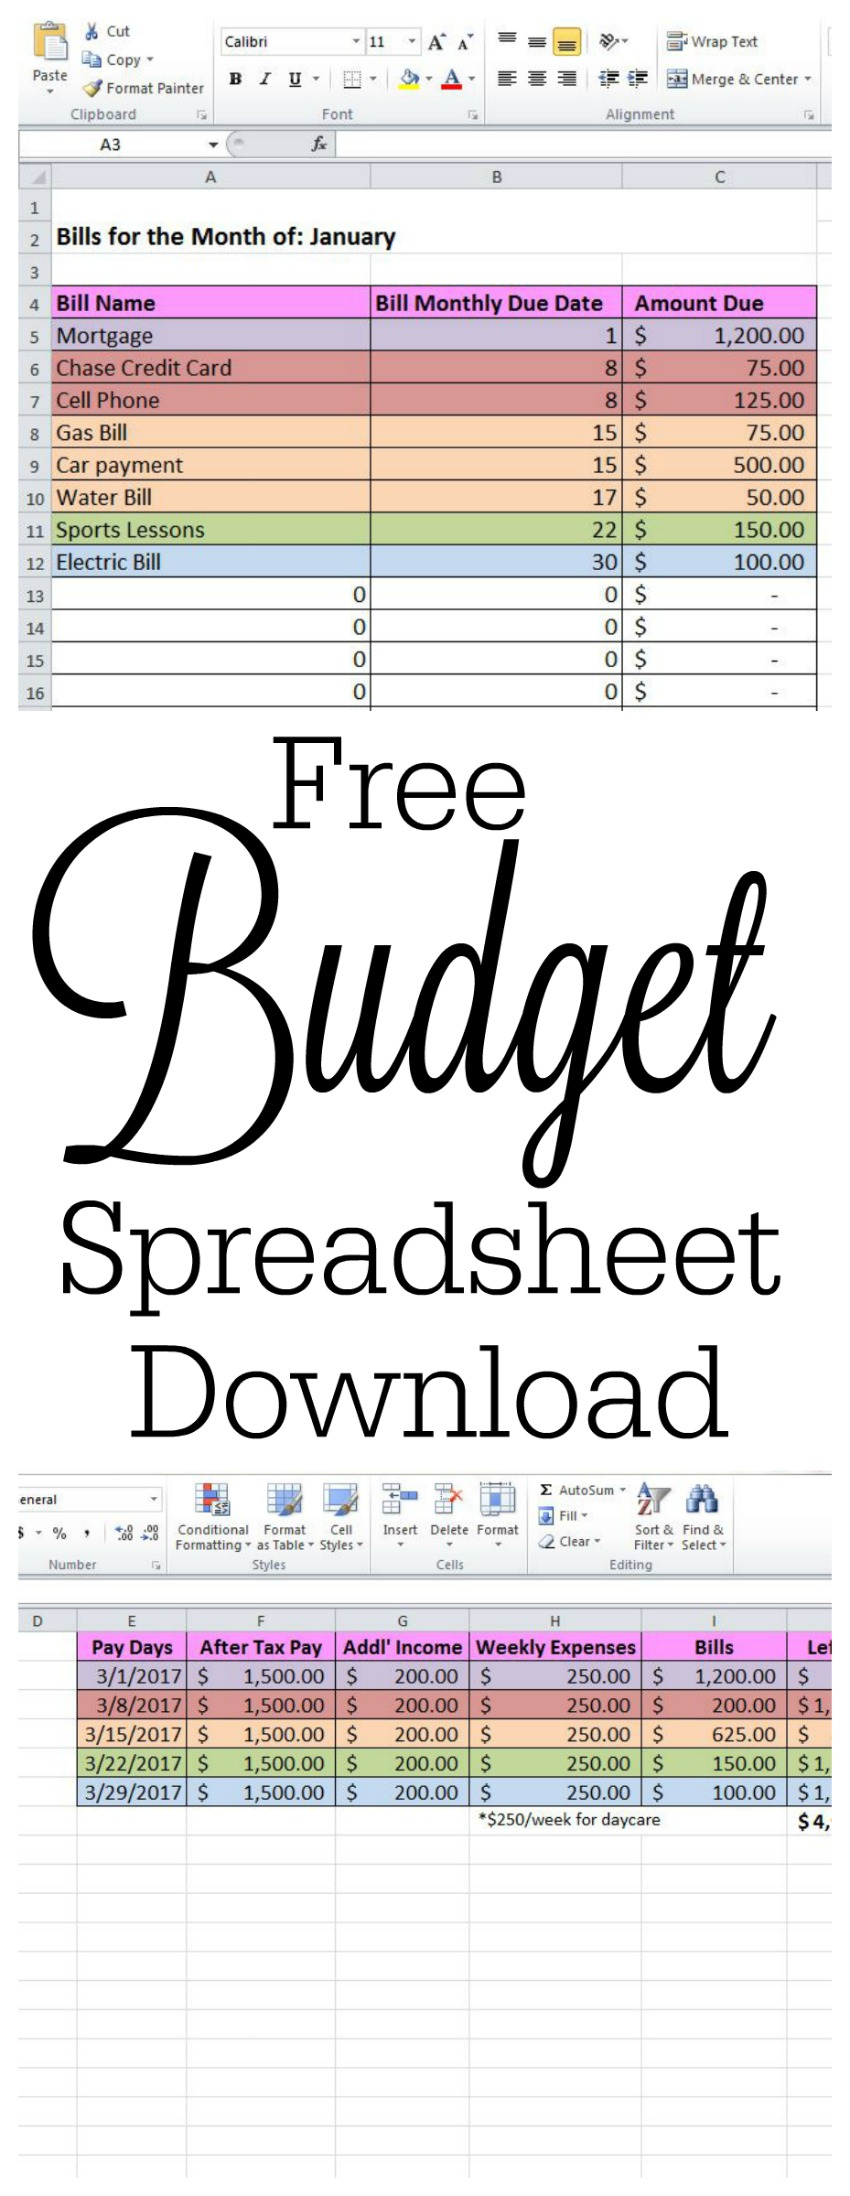 Free Budget Spreadsheet And How To Keep Track Of Passwords   The And Manage My Bills Spreadsheet